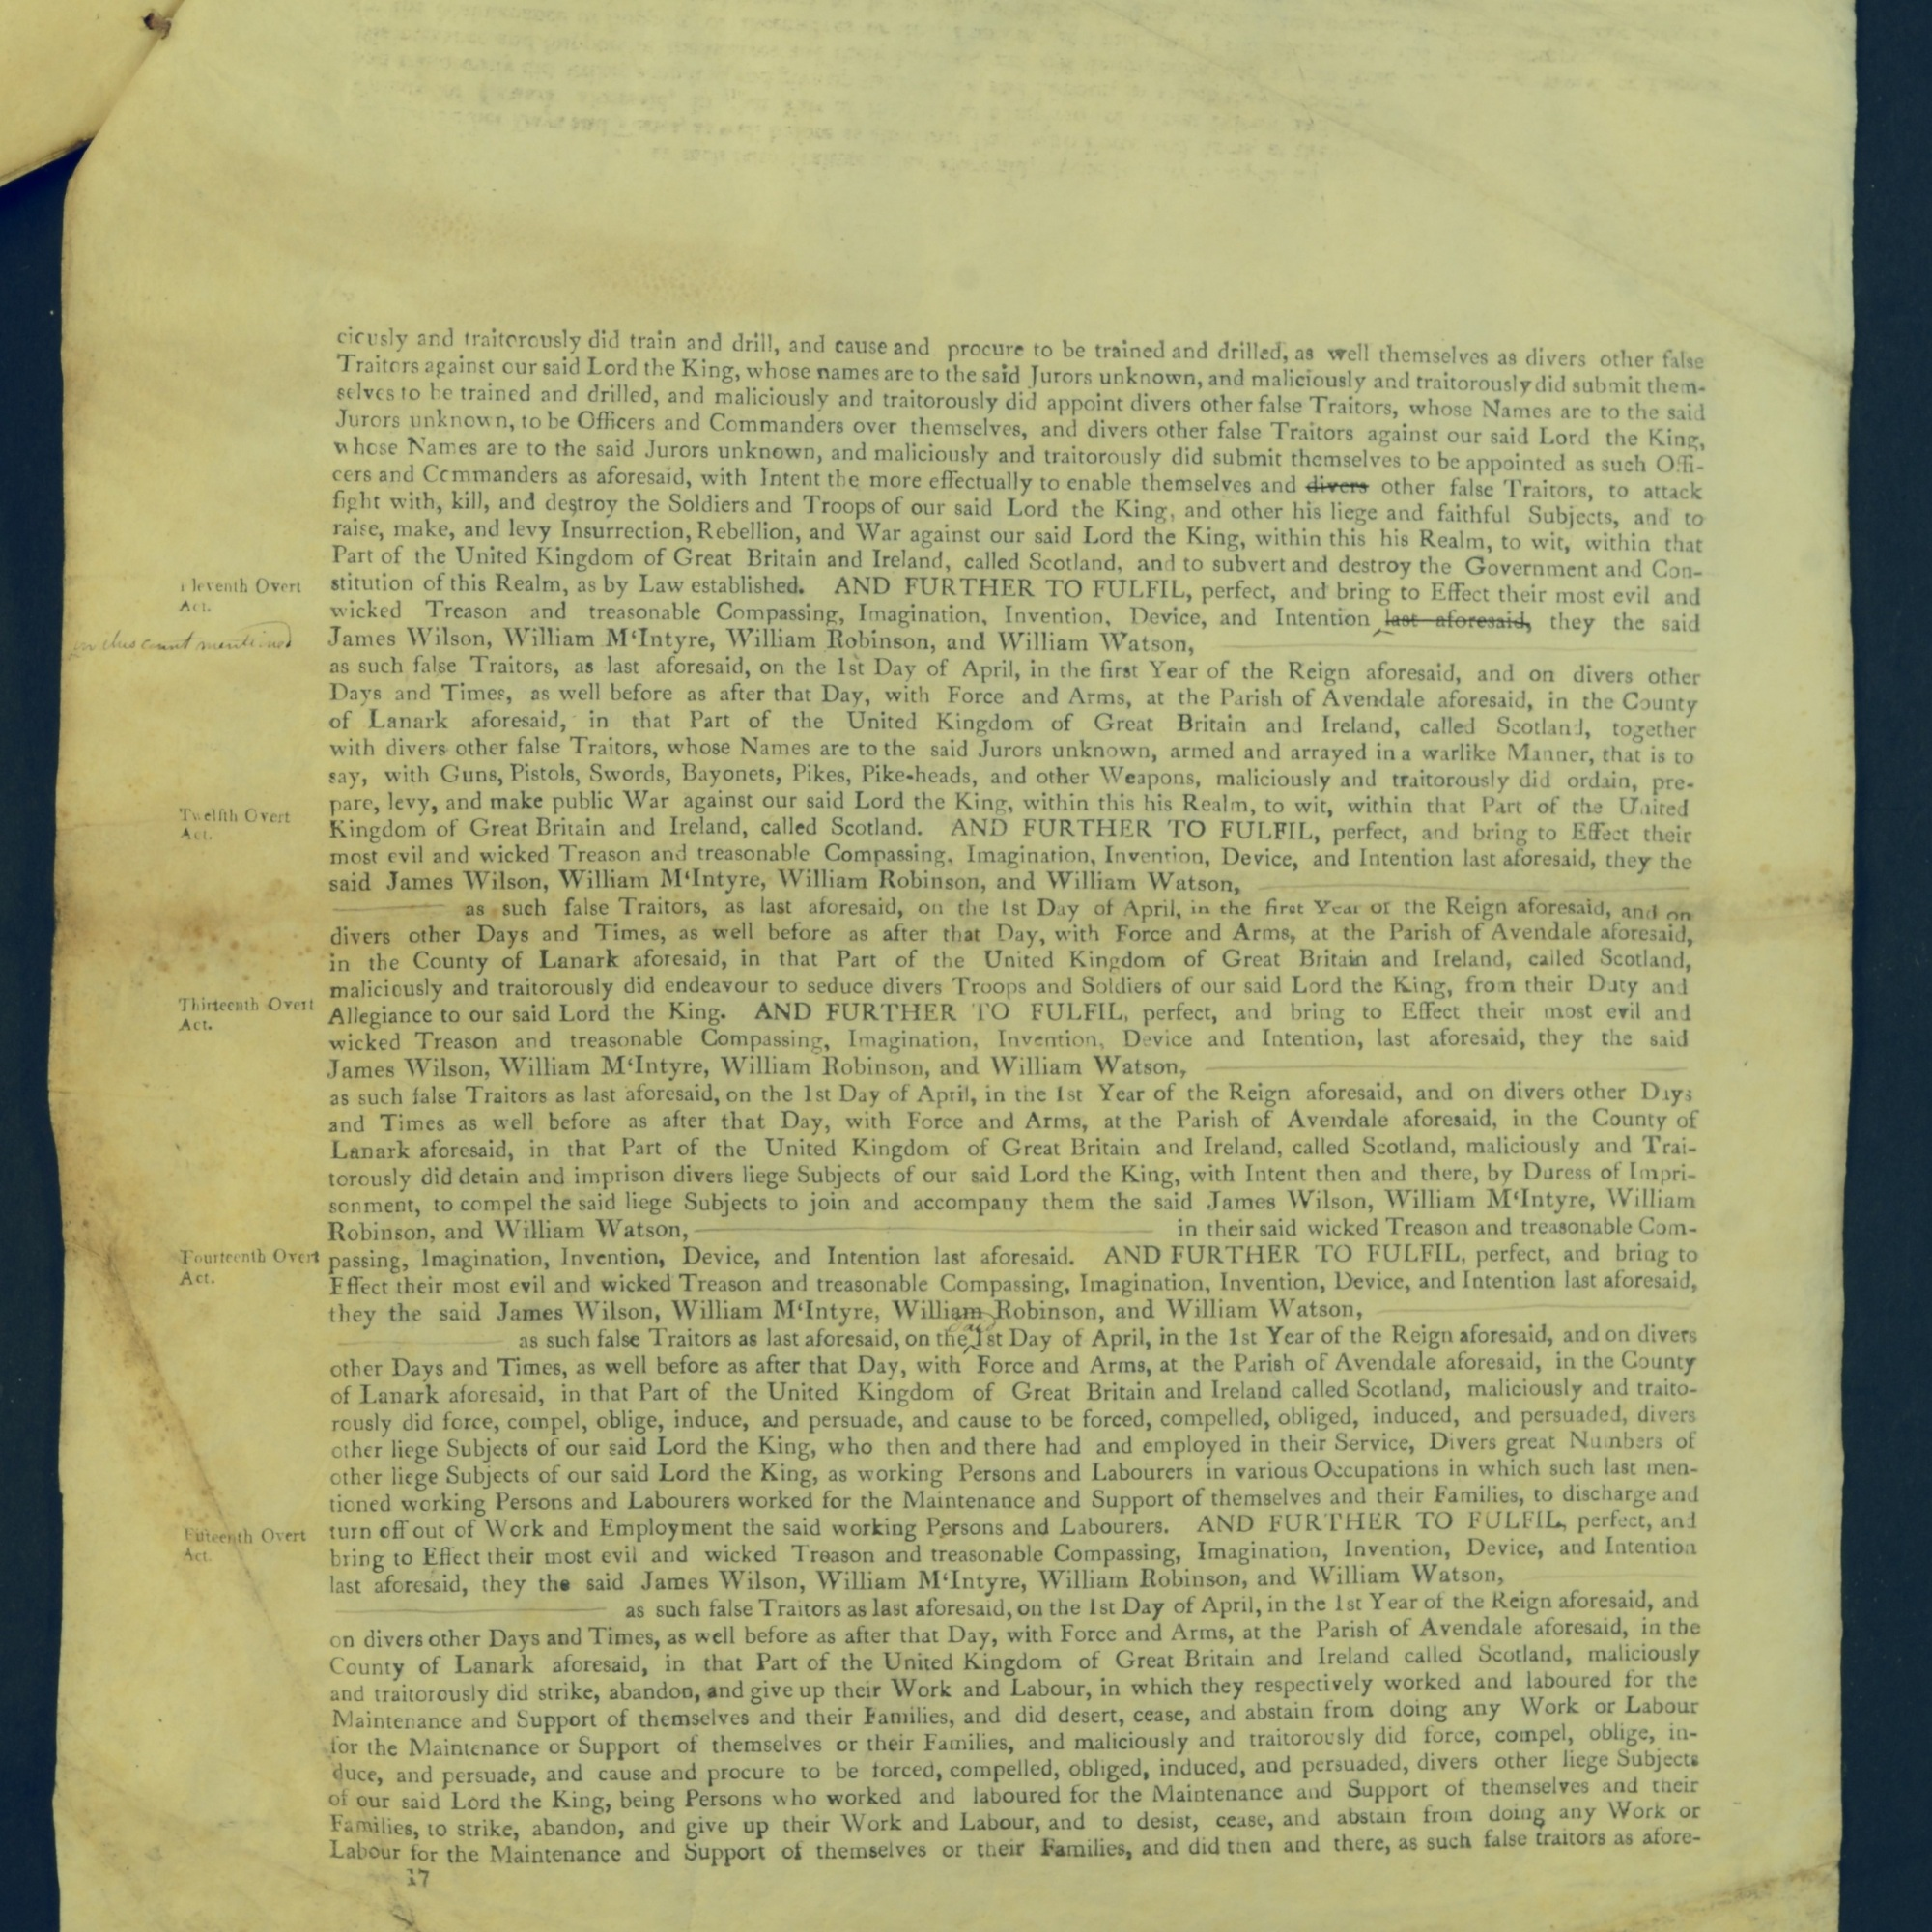 Treason Trials for the County of Lanark, the Strathaven Case. True bills found against four men, James Wilson, William McIntyre, William Robinson and William Watson. National Records of Scotland, Crown copyright, JC21/3/4 p17